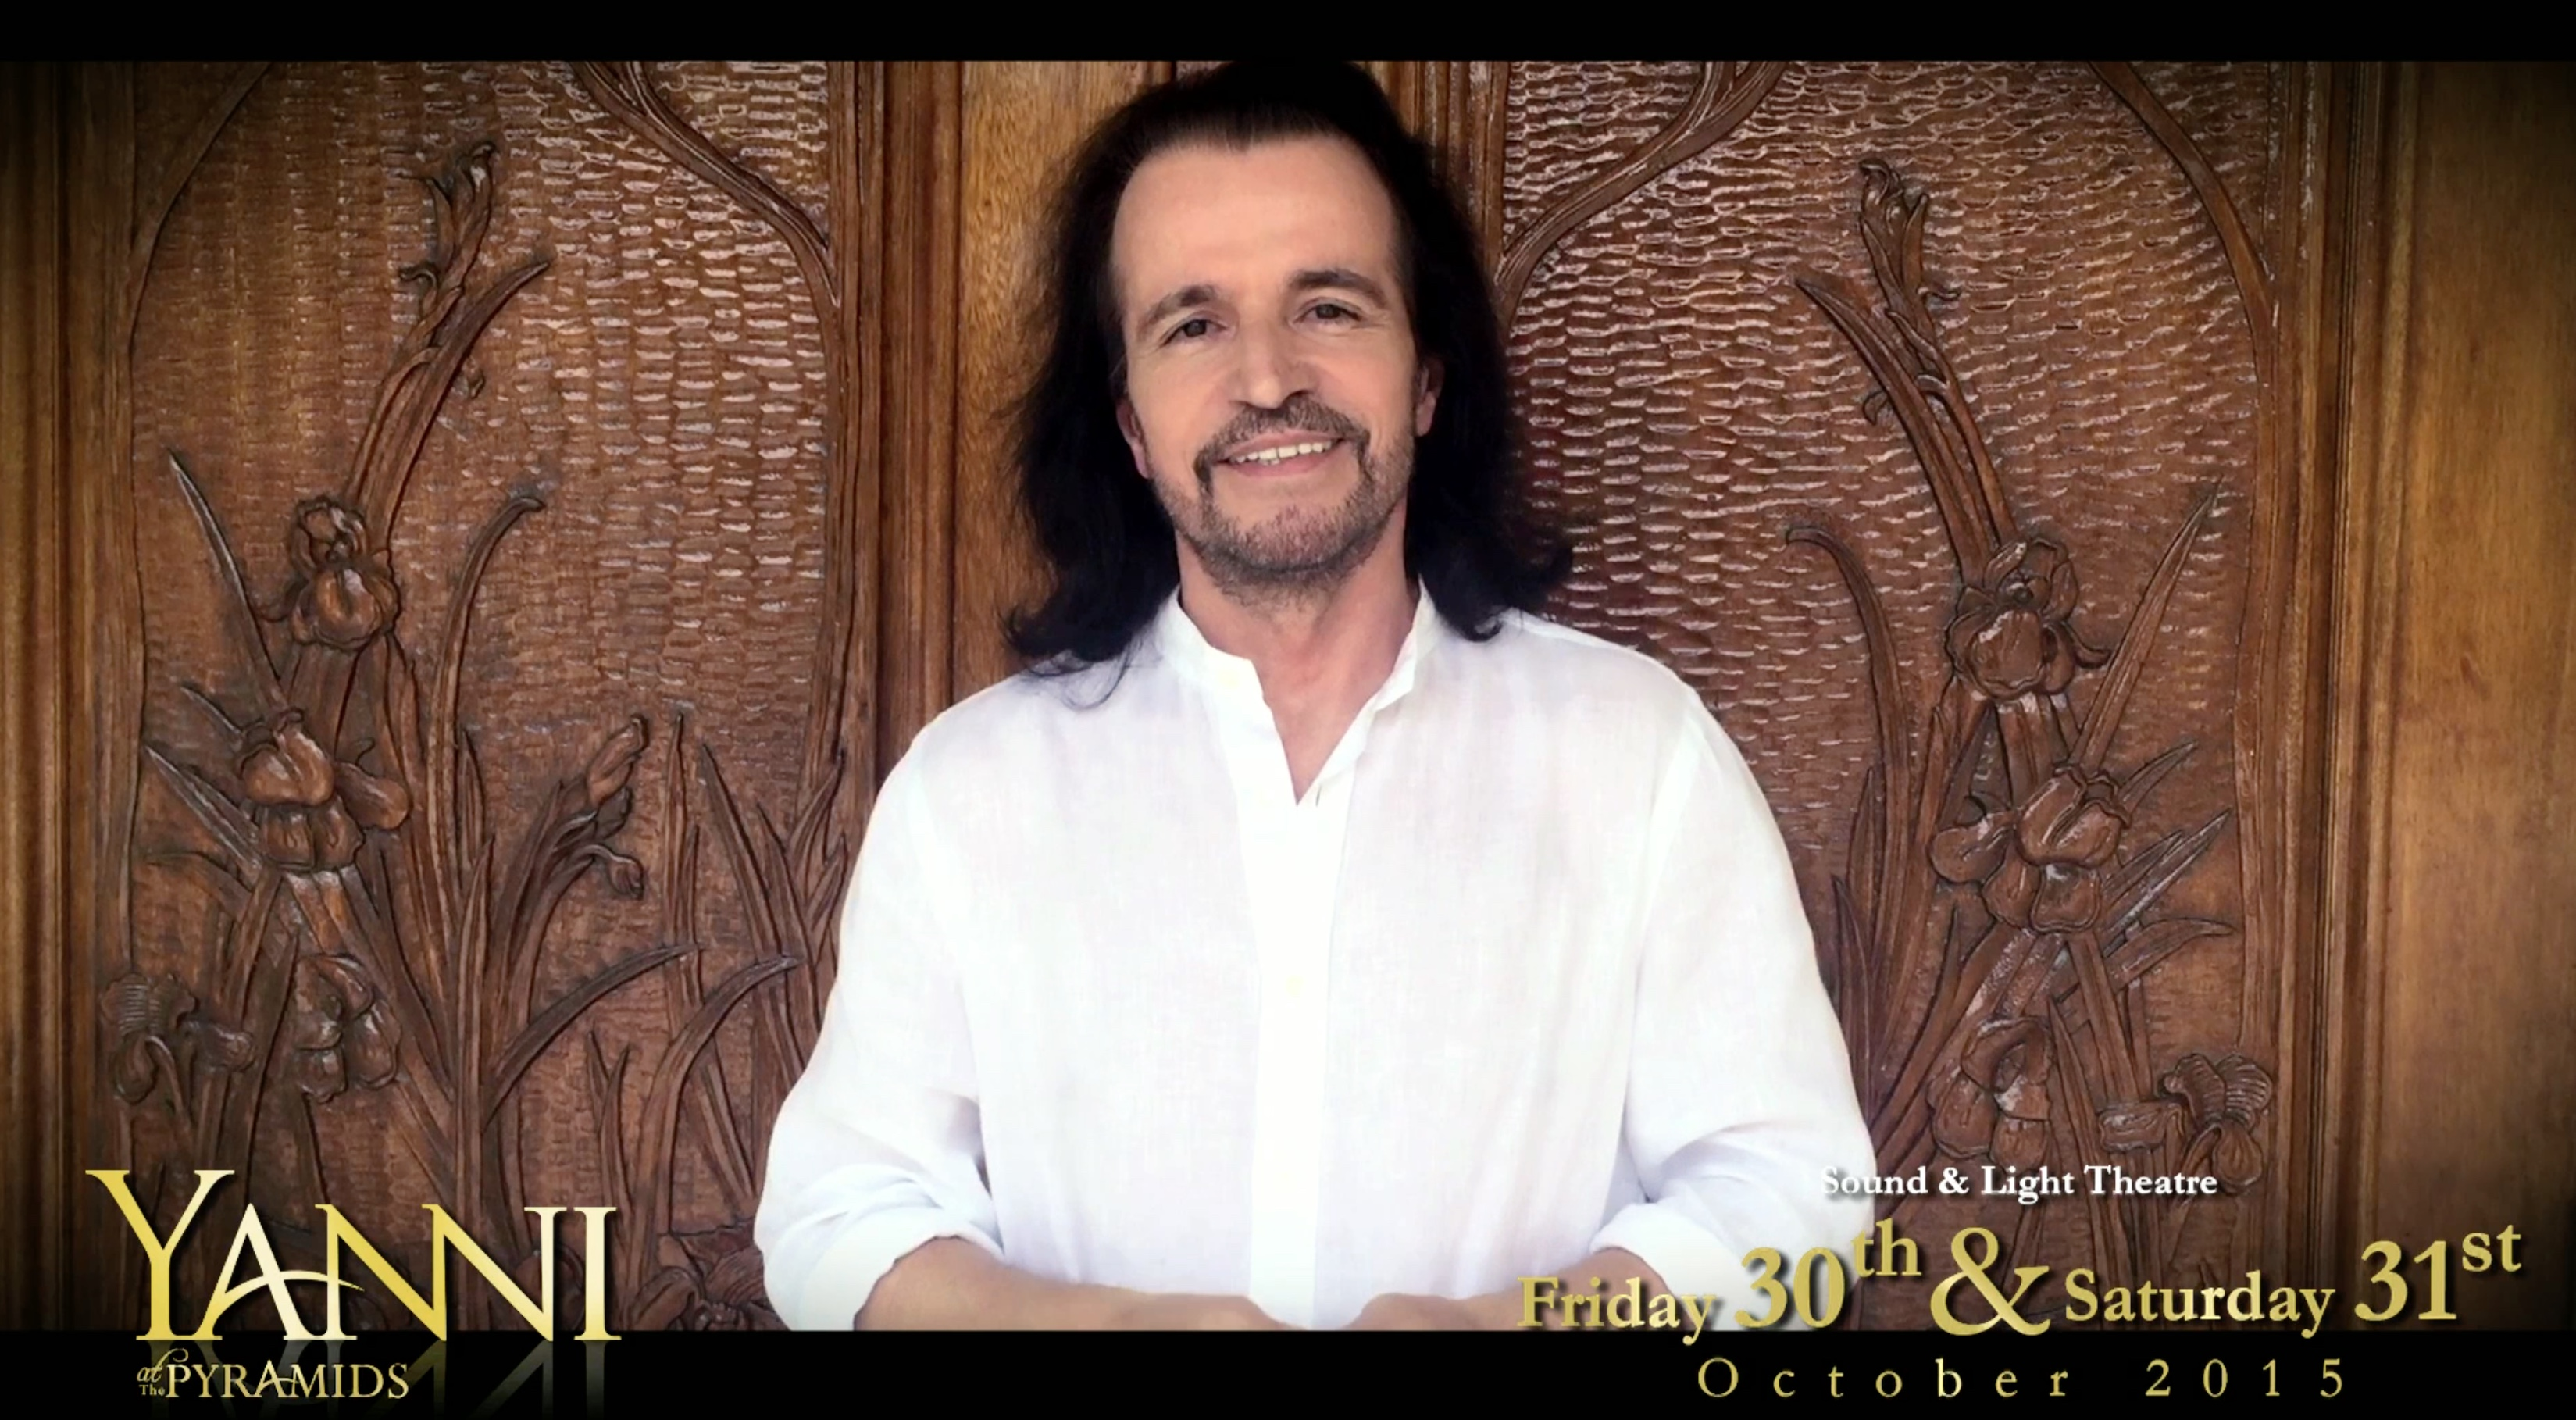 Yanni confirms the second concert in Egypt!